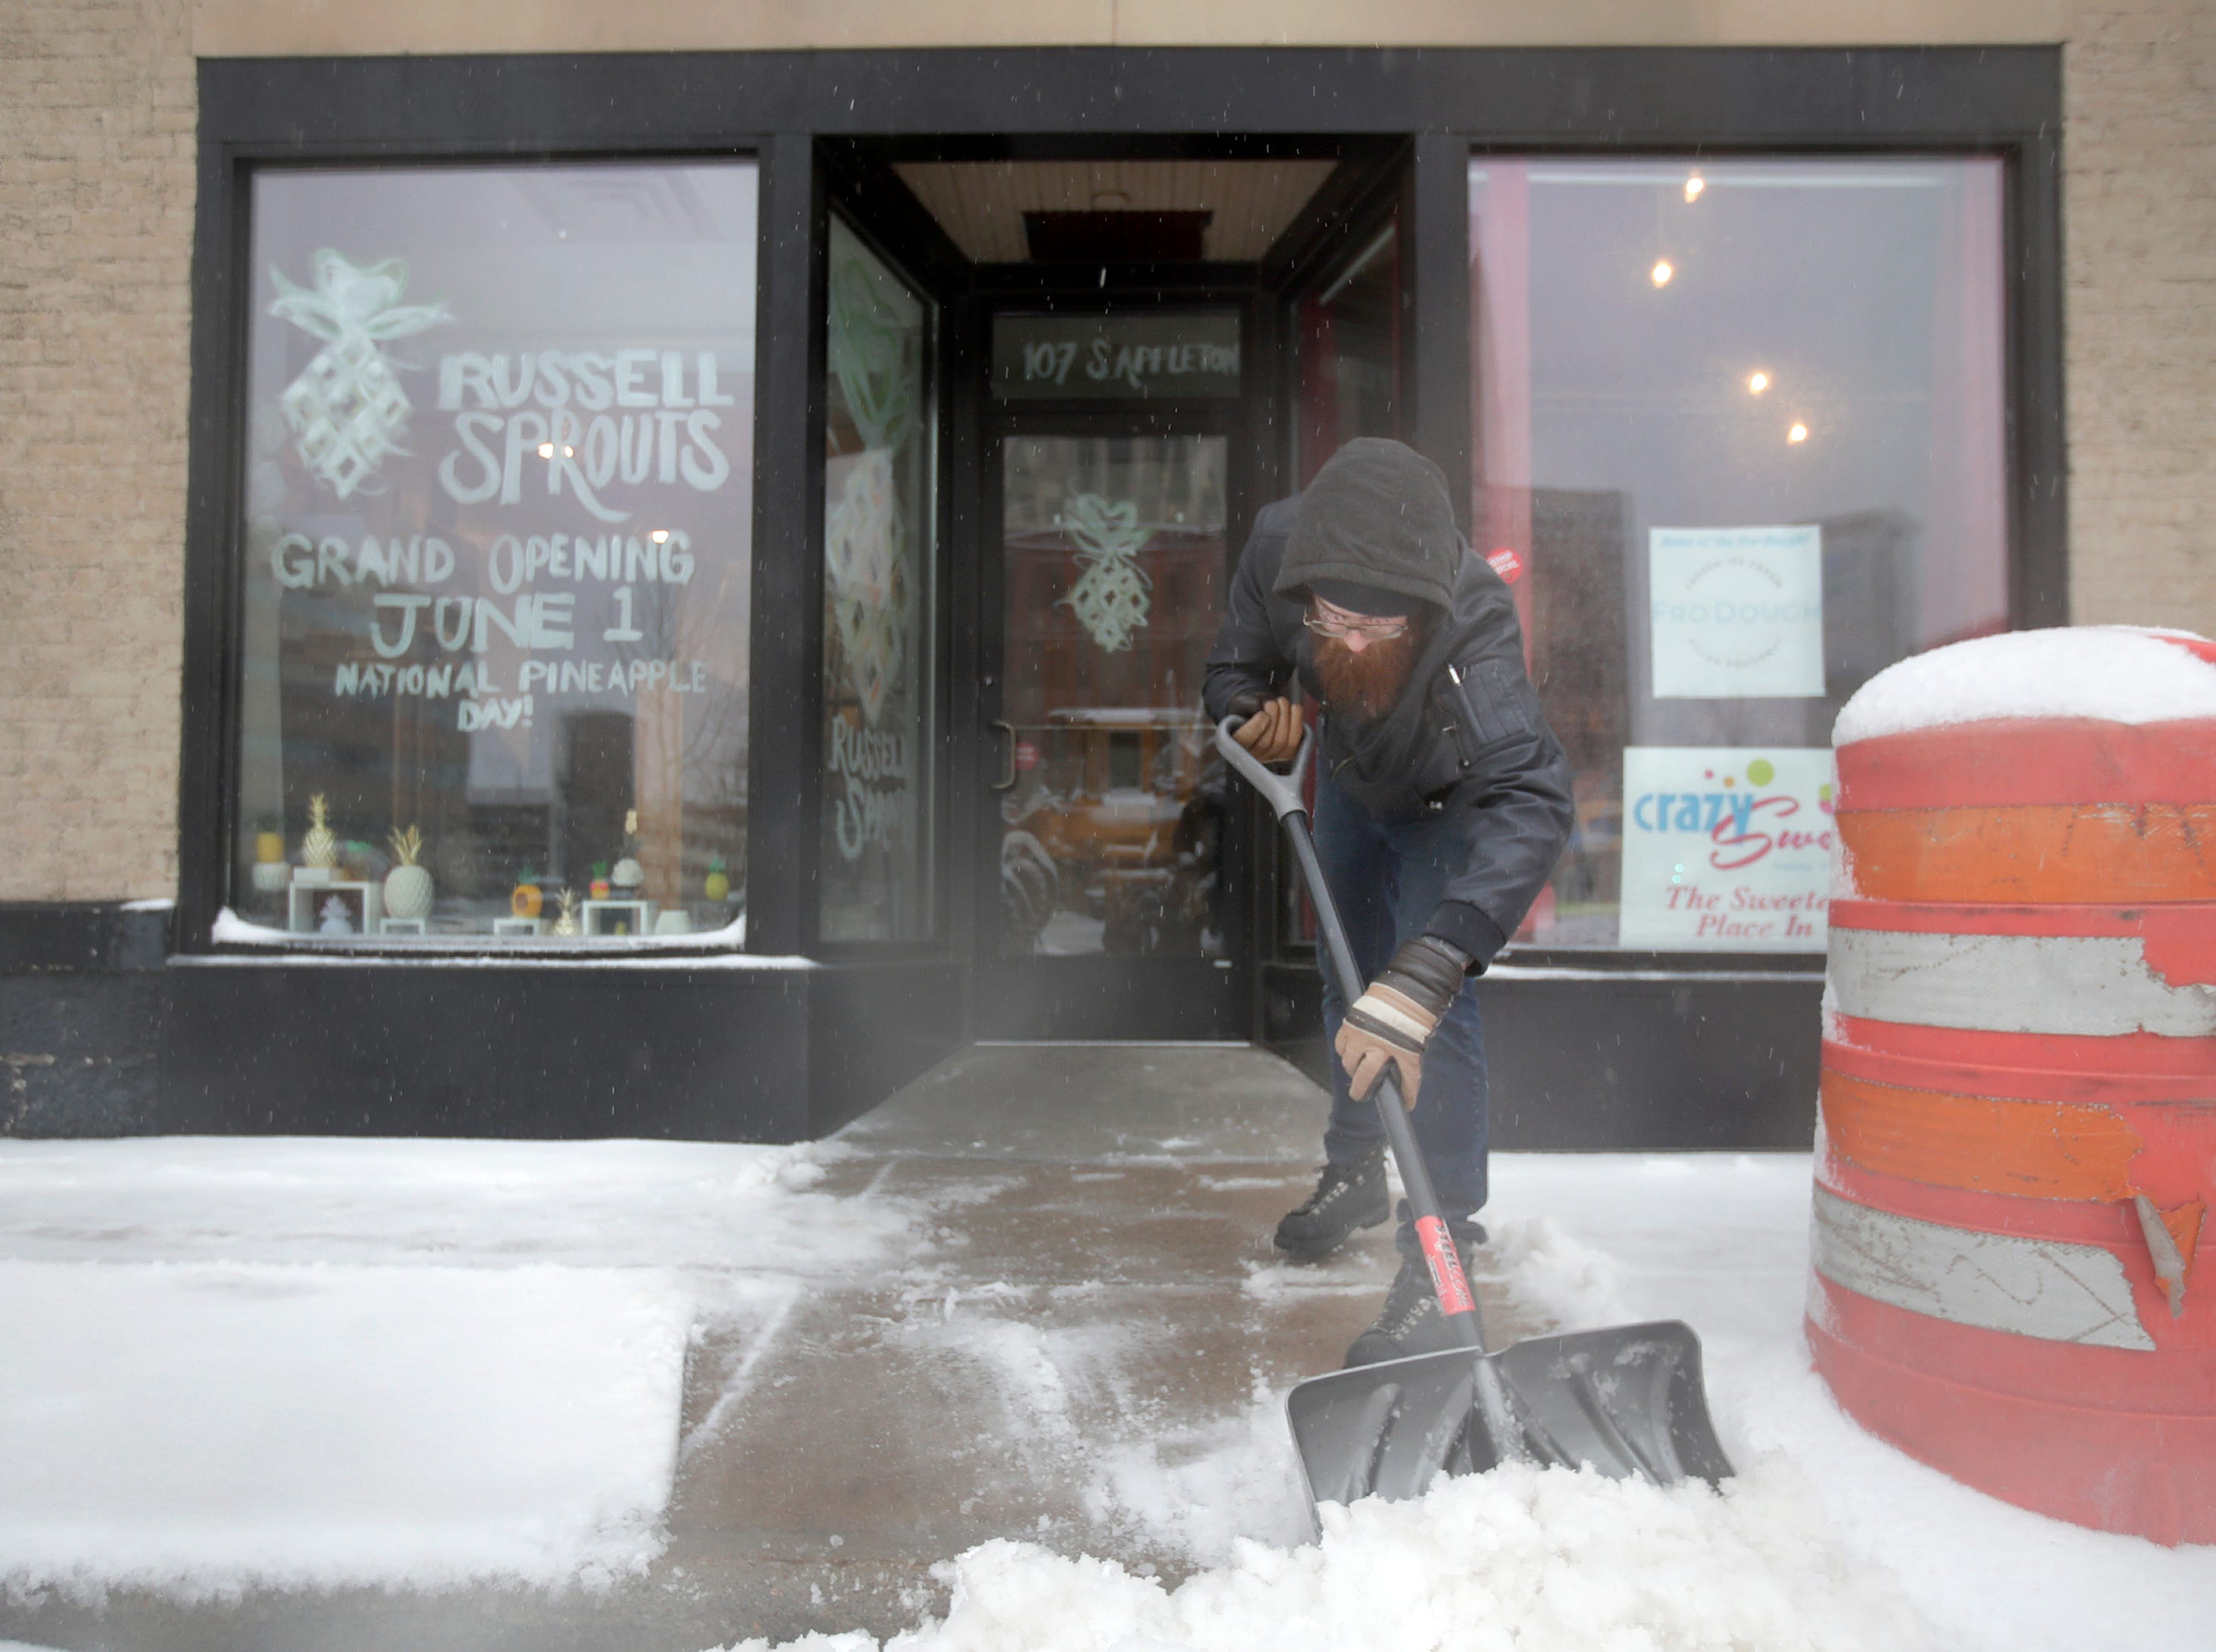 Maxwell Vanhandel, boyfriend of Russell Sprouts owner Carissa Hendricks, clears ice and snow from in front of the business in downtown Appleton Thursday, April 11, 2019, in Appleton, Wis. Russell Sprouts, a pineapple art gallery, opens on June 1.Danny Damiani/USA TODAY NETWORK-Wisconsin